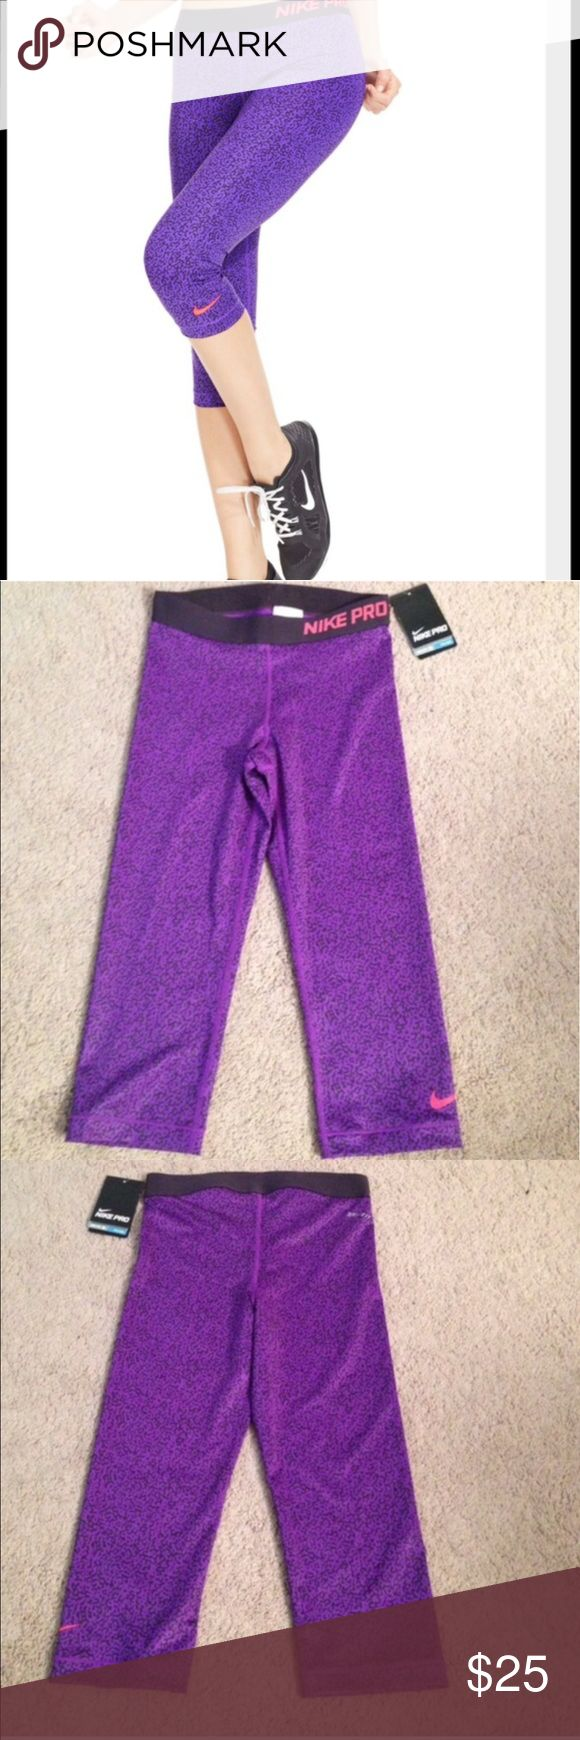 Nike Pro Capri.. Nike Pro Capri..   Brand new never been used Tags still attached Made of 80% polyester 20% spandex Nike Pants Capris